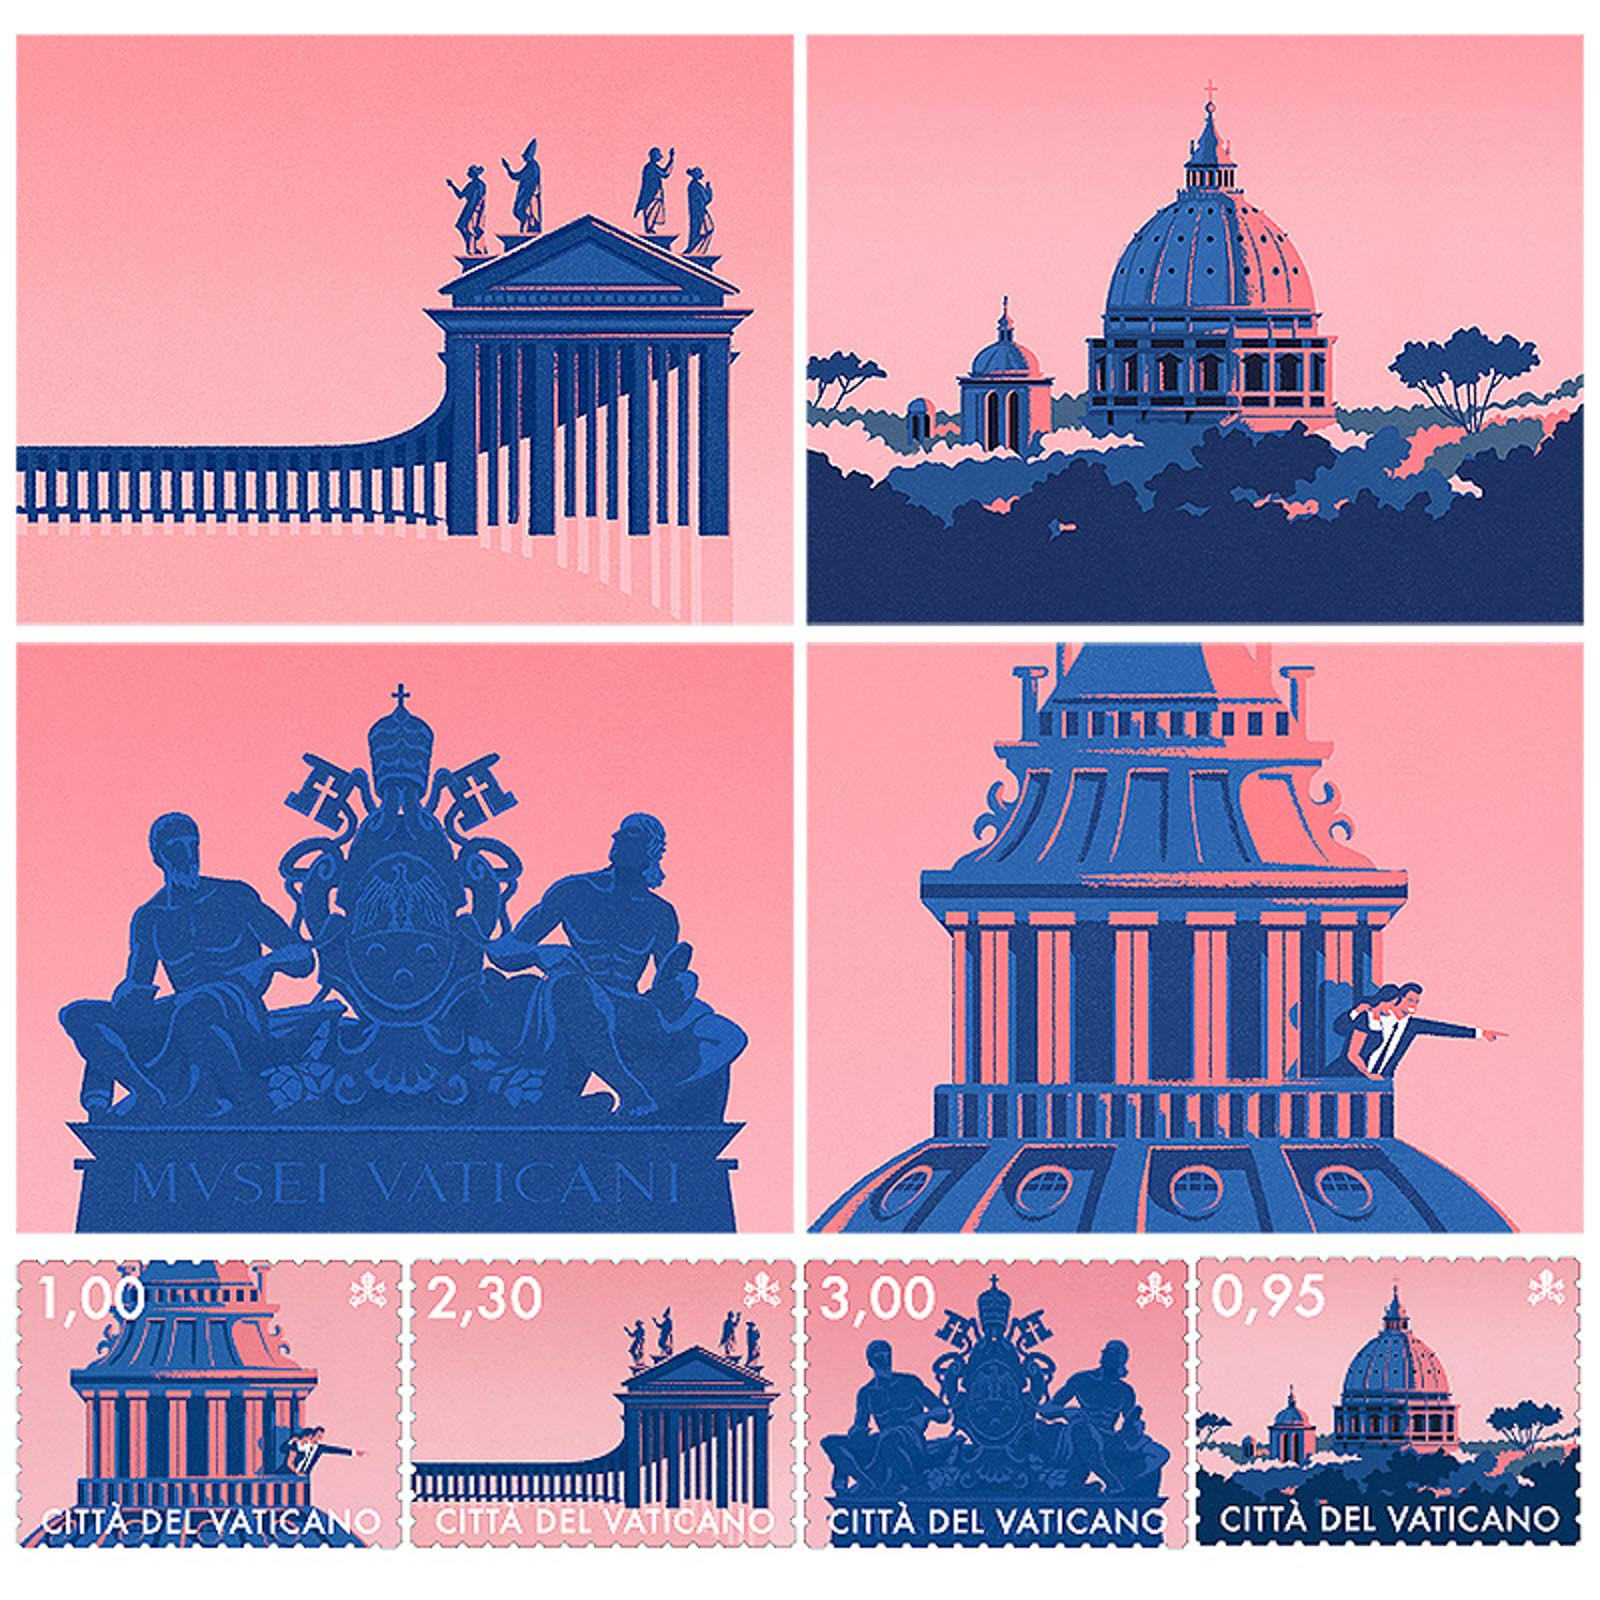 POSTCARD 05 - The Philatelic Office of the Vatican